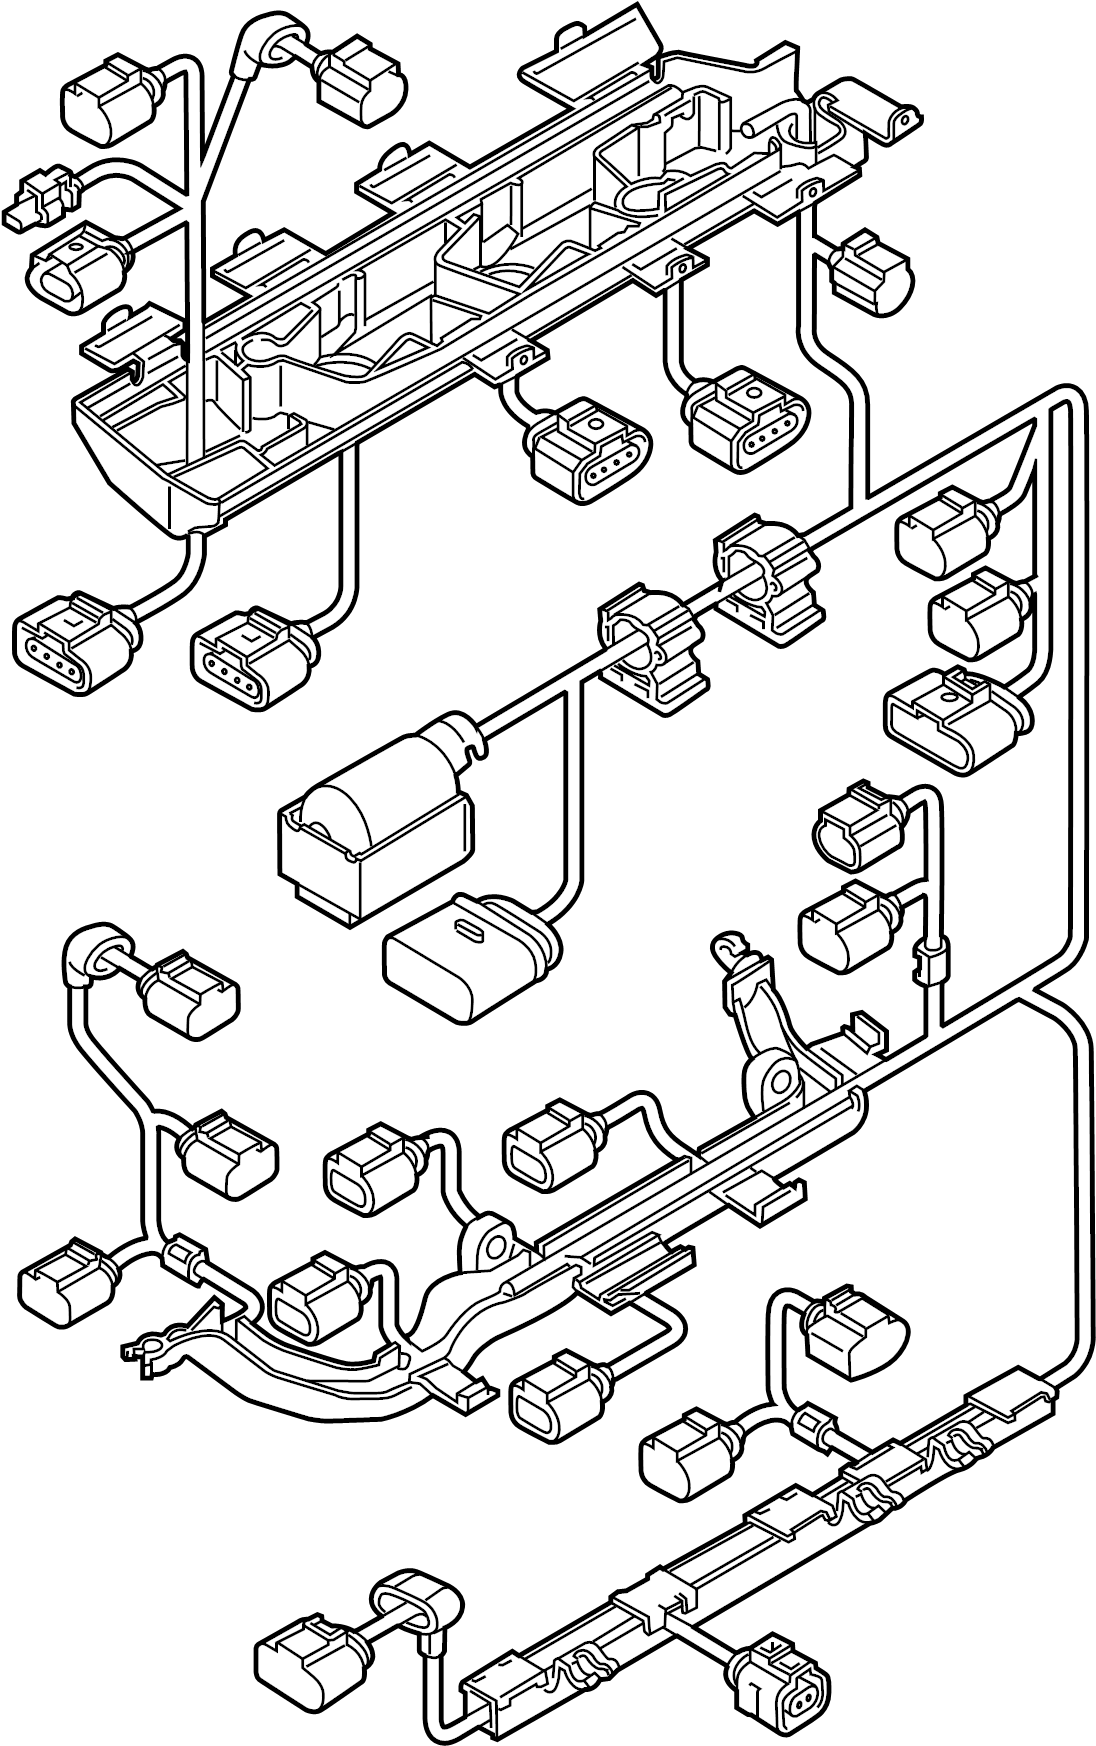 2016 Volkswagen Jetta Hybrid Engine harness. Engine Wiring